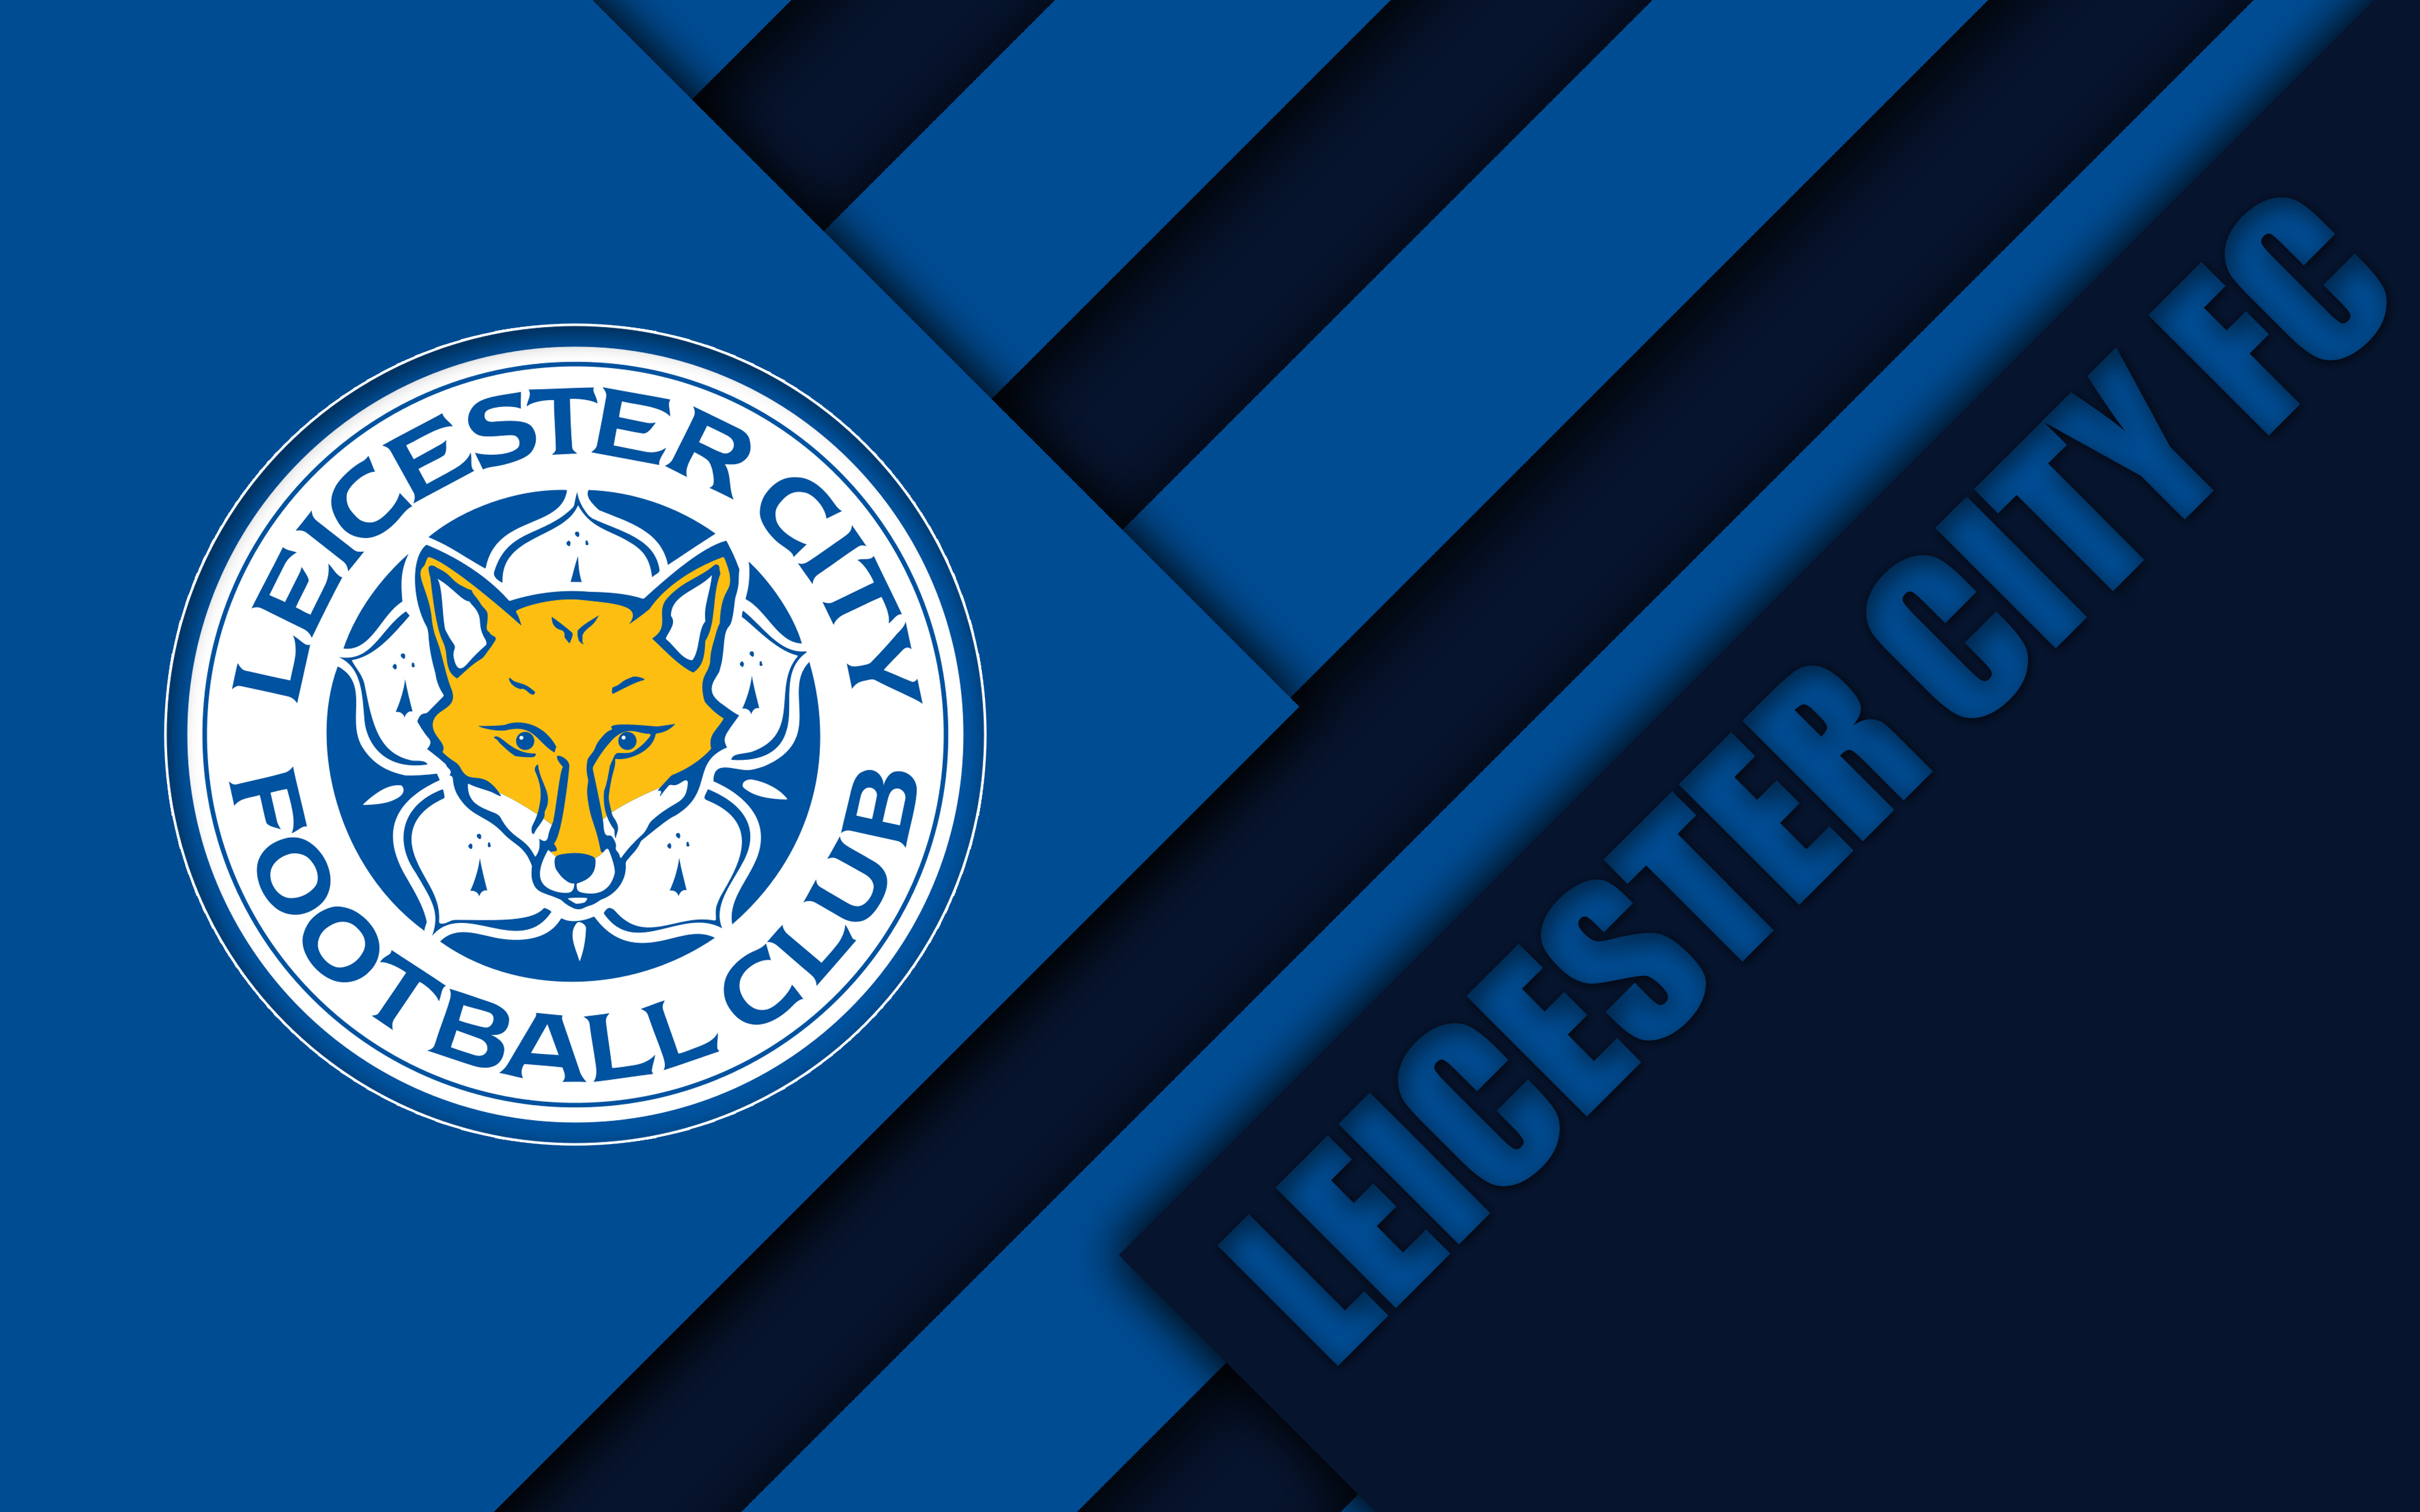 Leicester City FC 4k Ultra HD Wallpaper Background Image 3840x2400